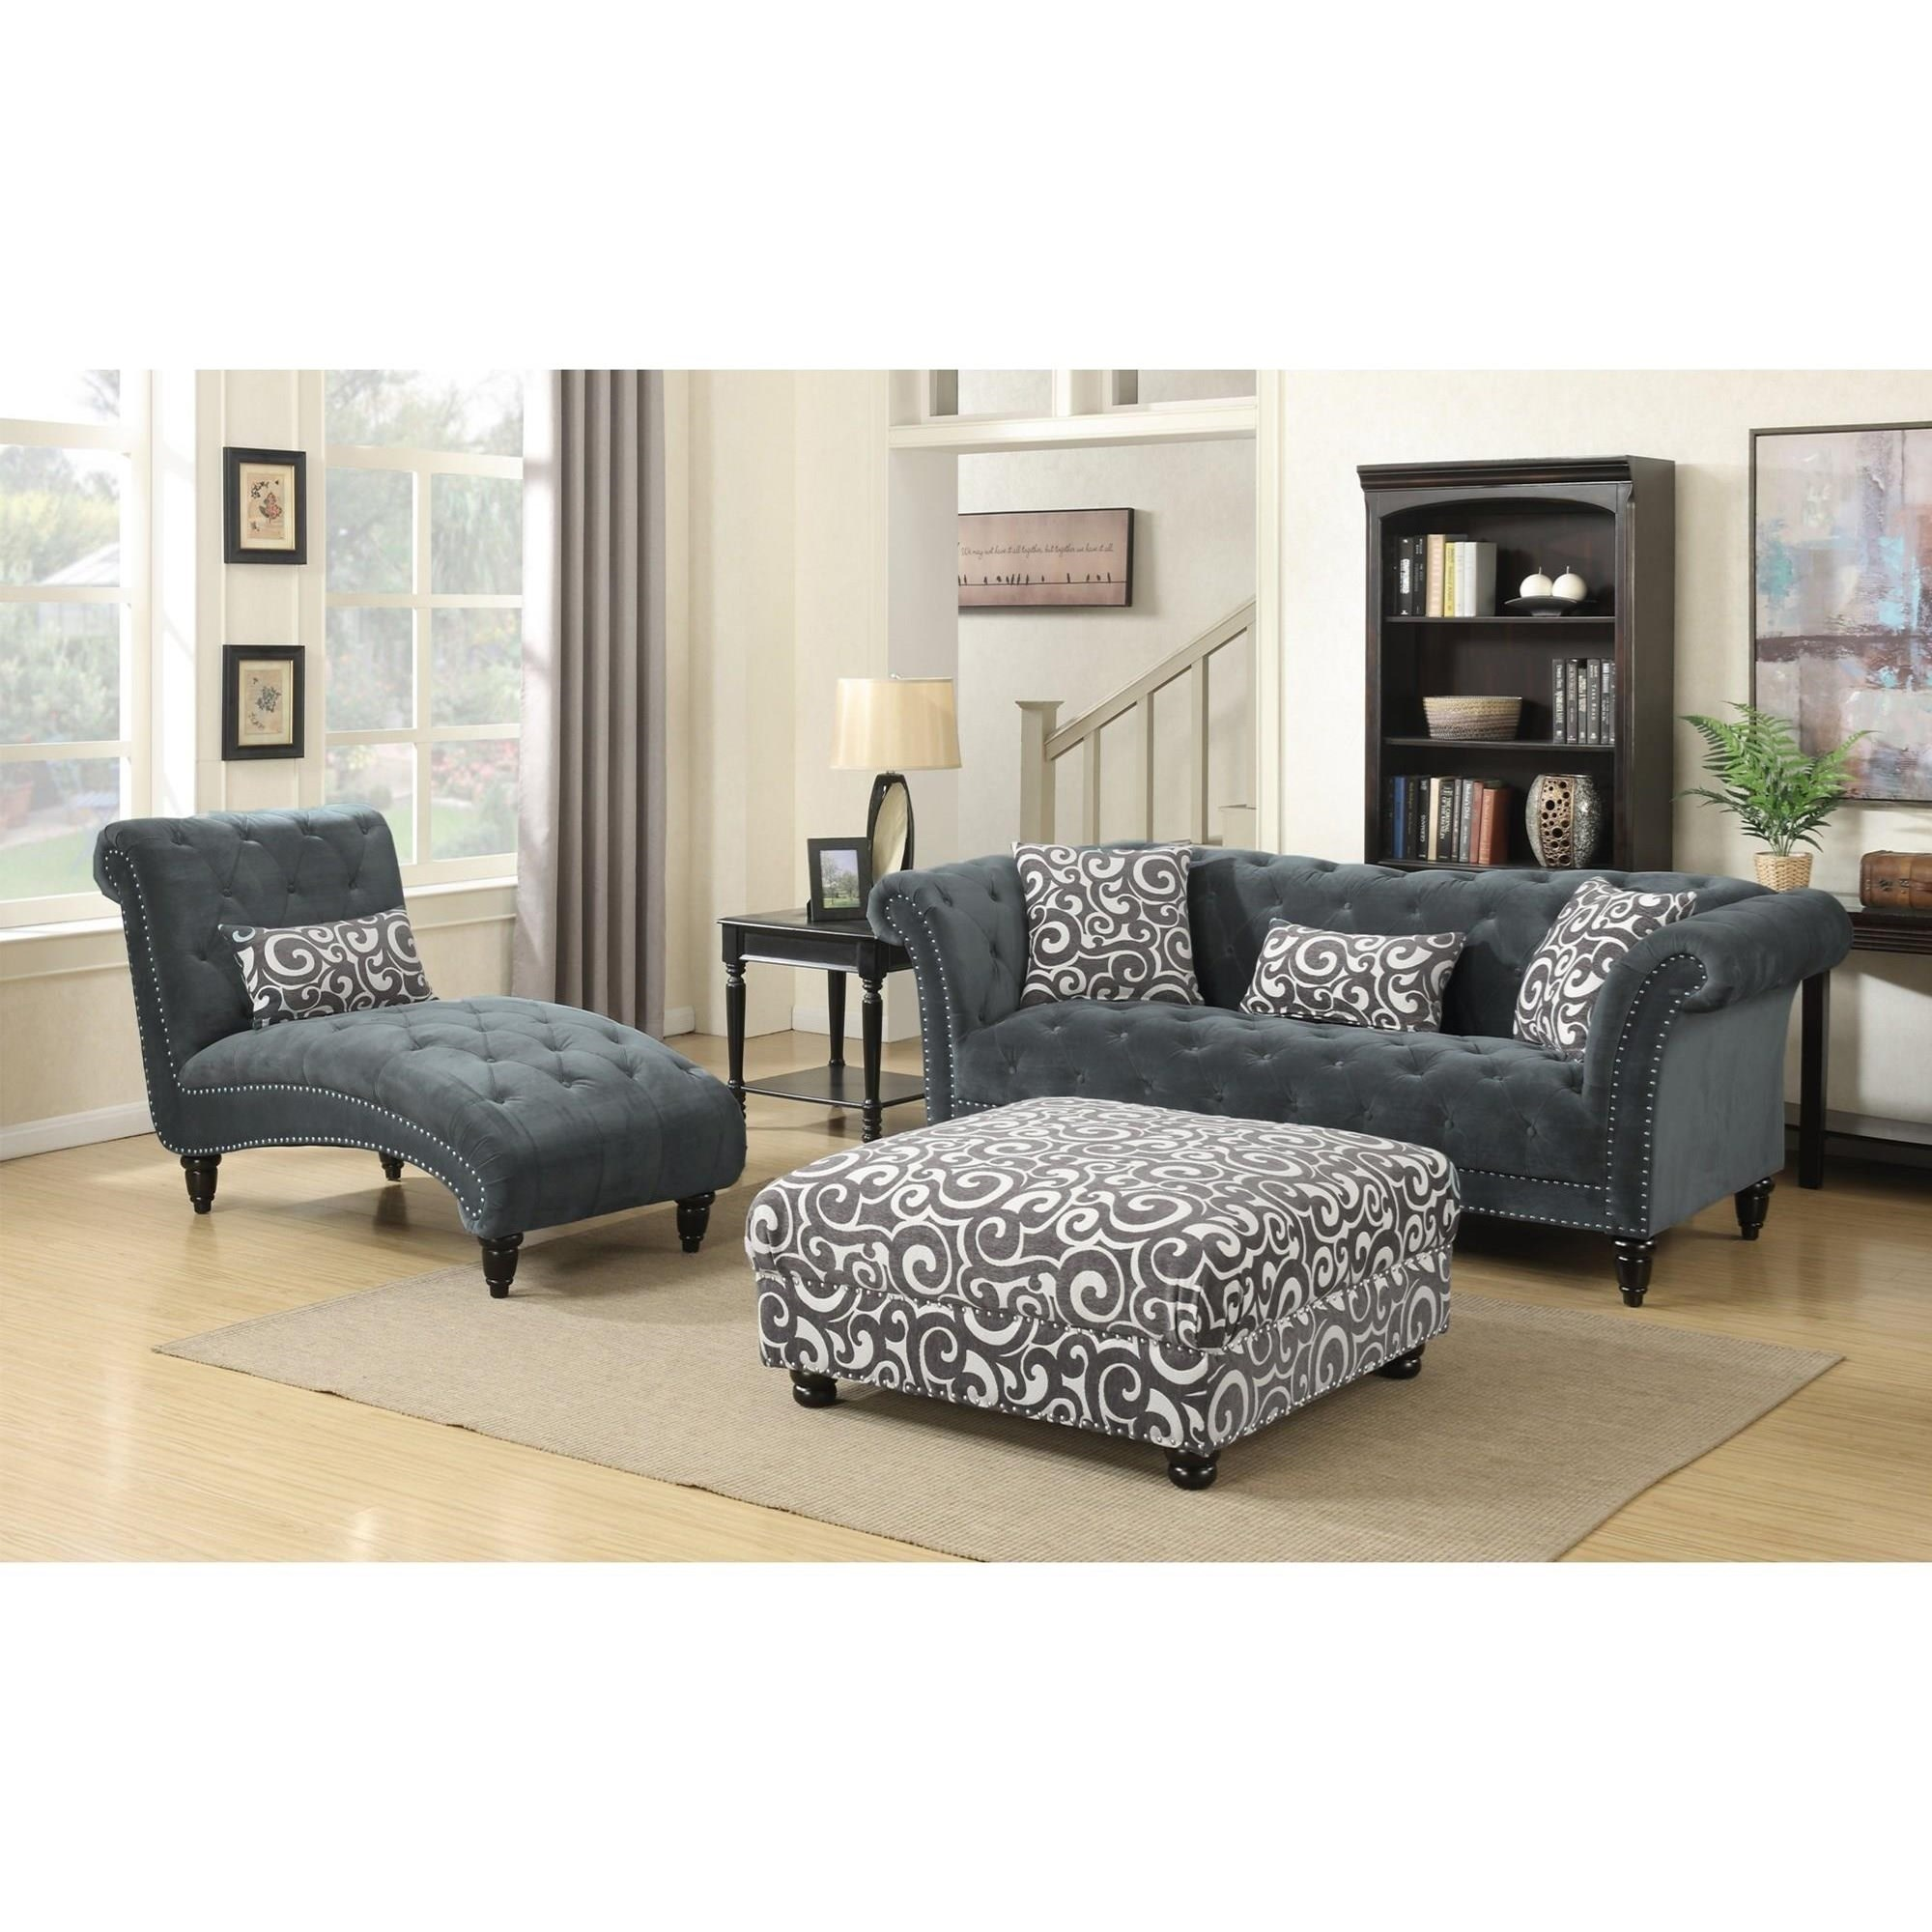 Twain 3-Piece Living Room Group by Elements International at Wilcox Furniture